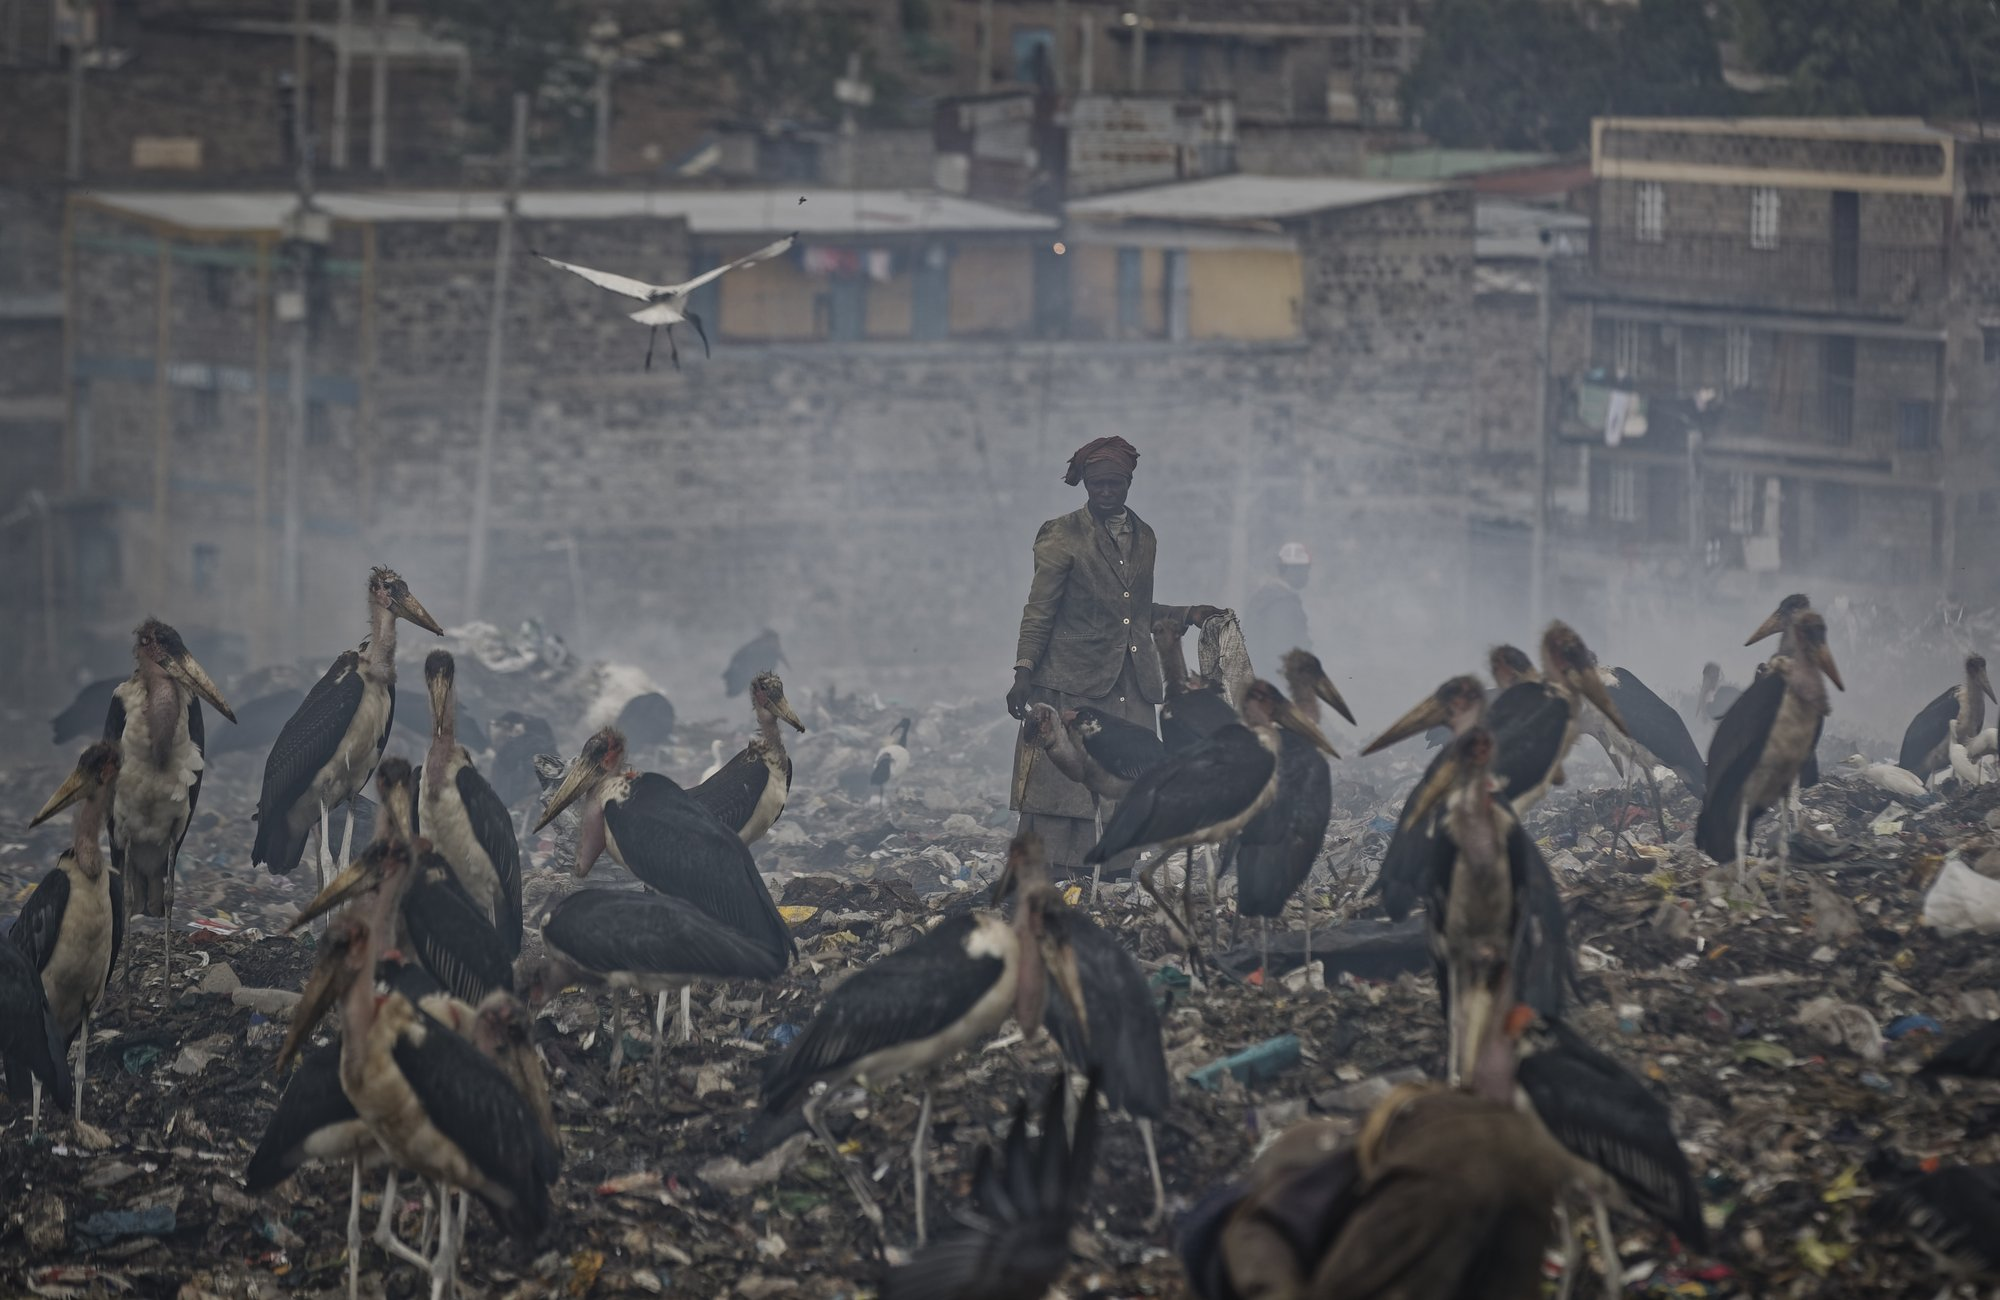 Africa's solid waste is growing, posing a climate threat